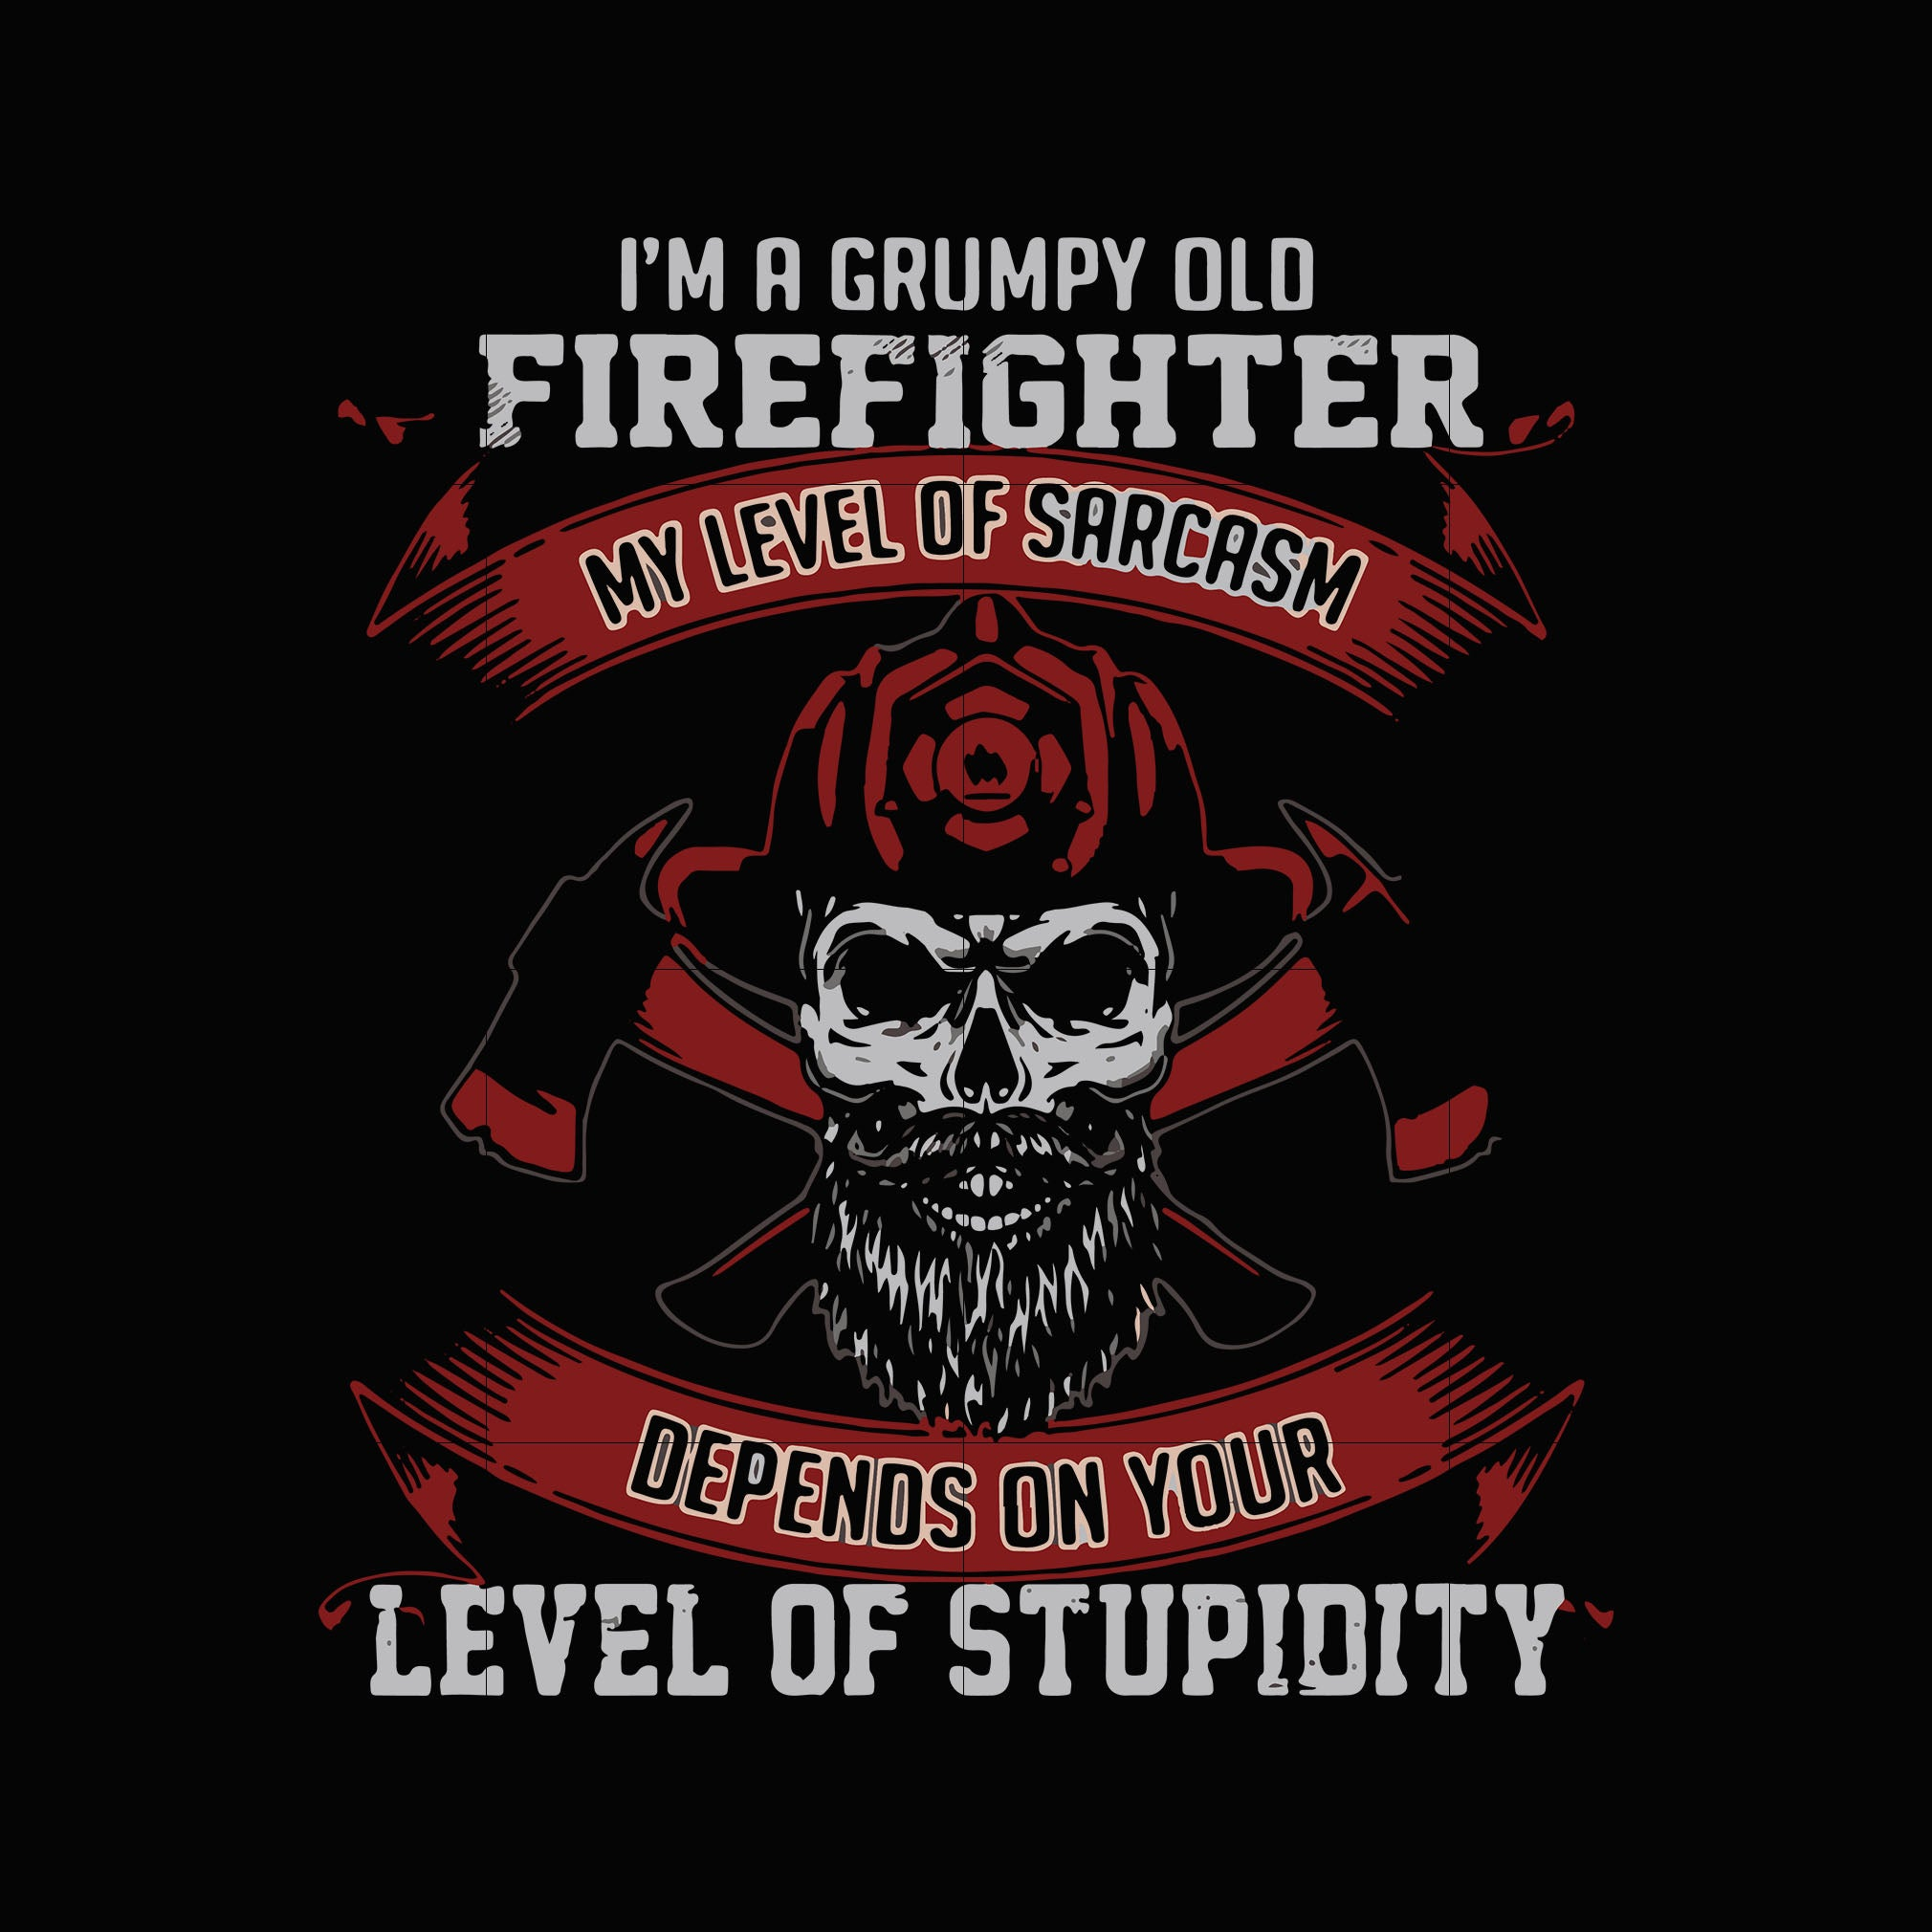 I'm a grumpy old firefighter my level of sarcasm depends on your level of stupidity svg ,dxf,eps,png digital file